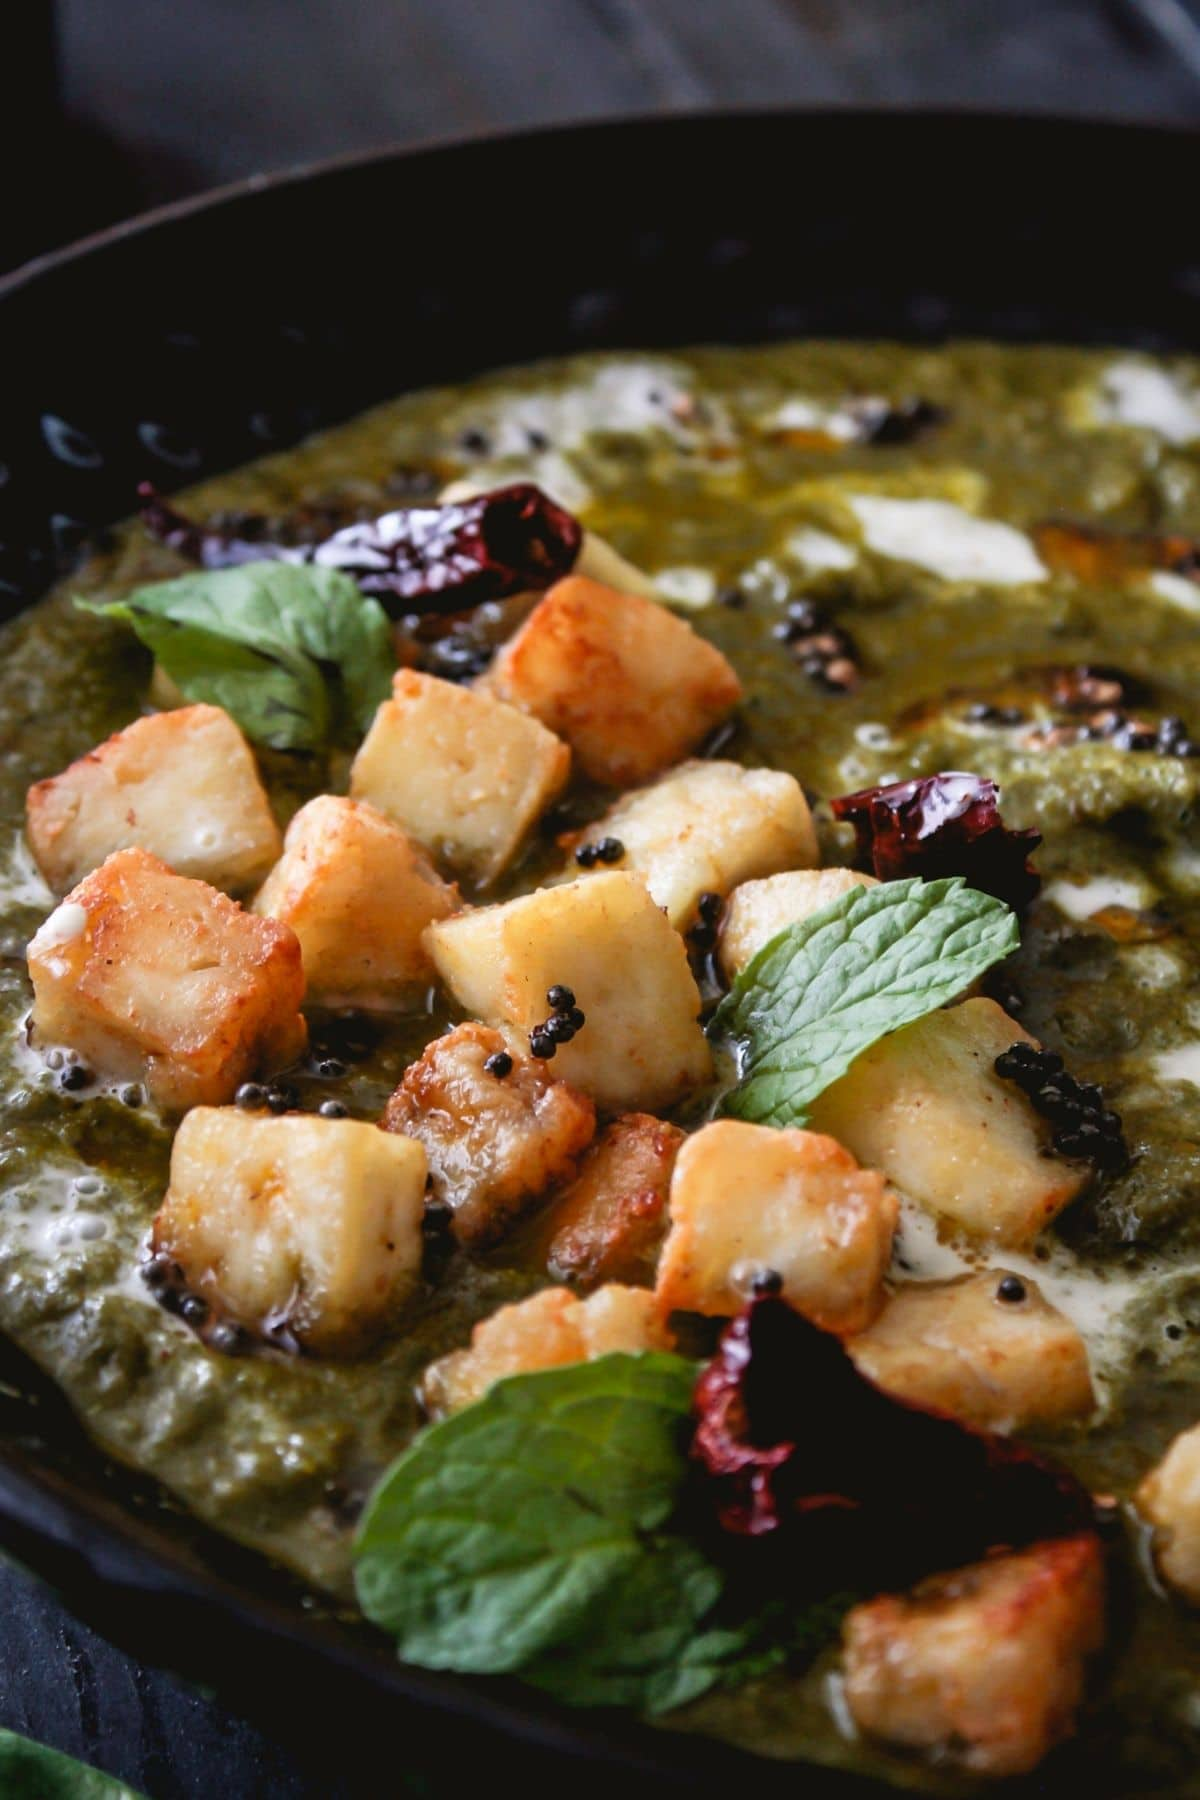 Paneer cubes and red chilies on top of black bowl of palak paneer